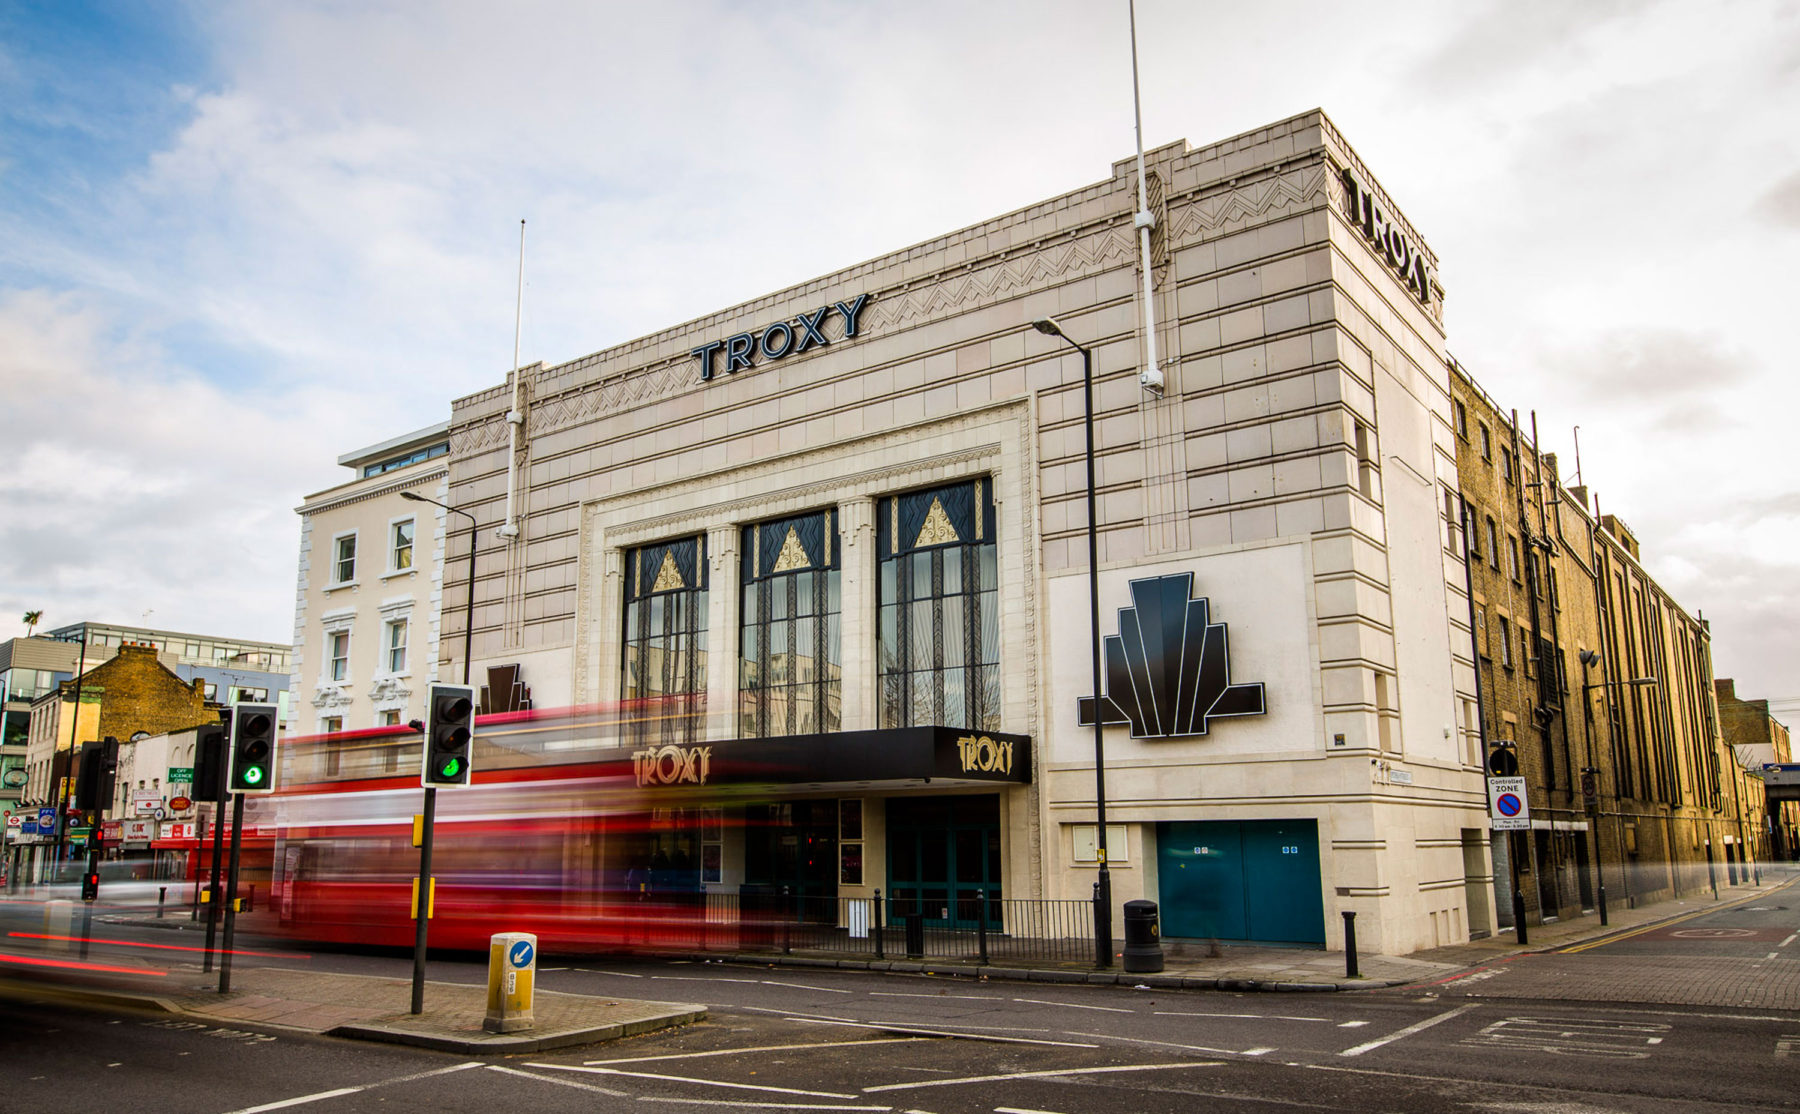 Troxy Banqueting Hall 01 Events Cinema Conservation Faience